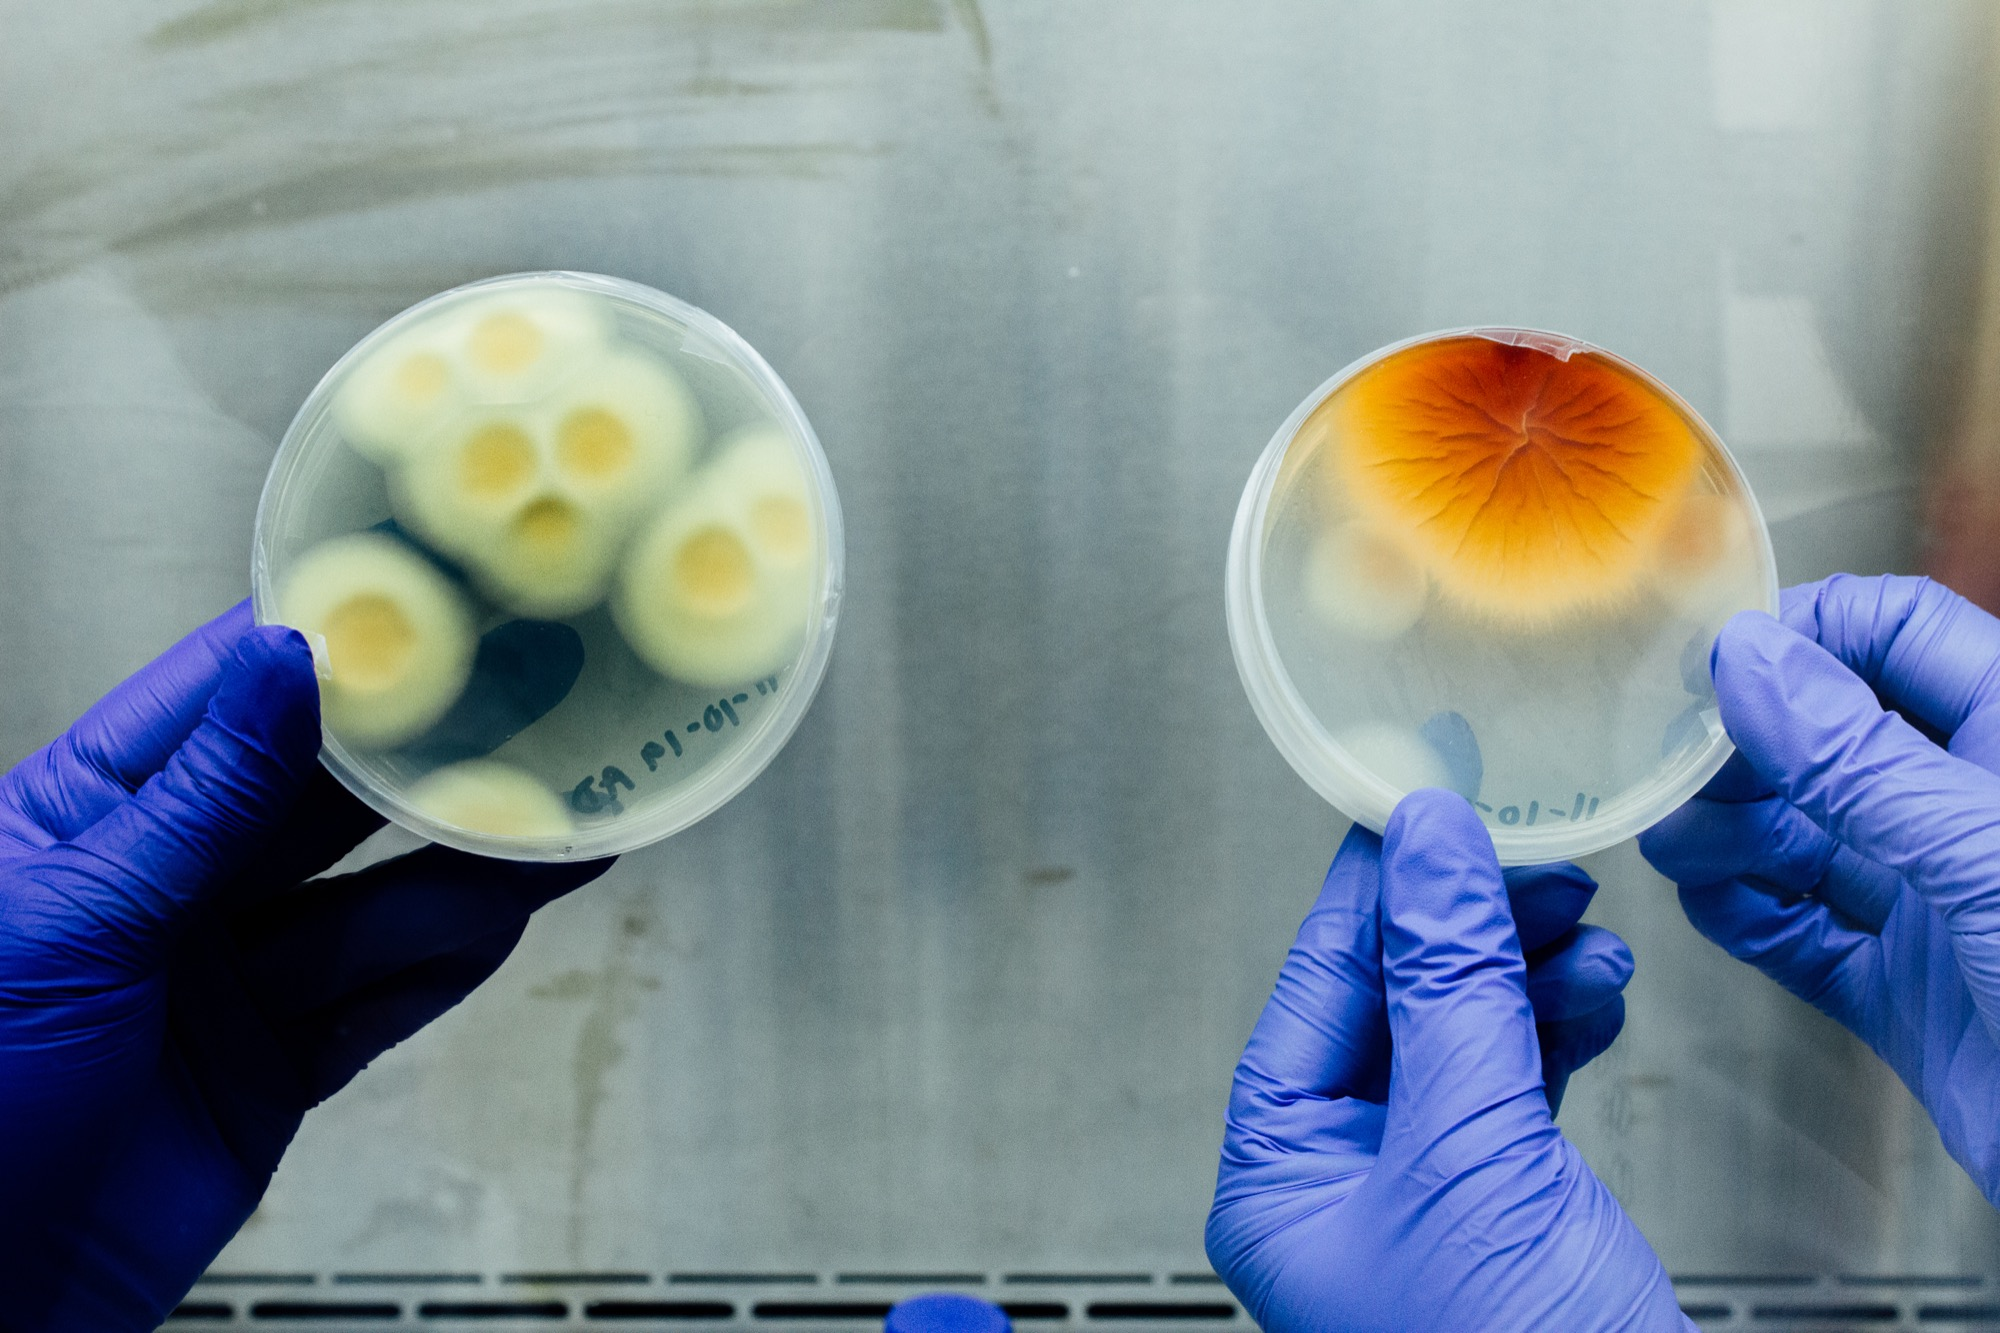 hands holding up two petri dishes, one filled with white and yellow spores and the other with a blooming yellow and orange spore